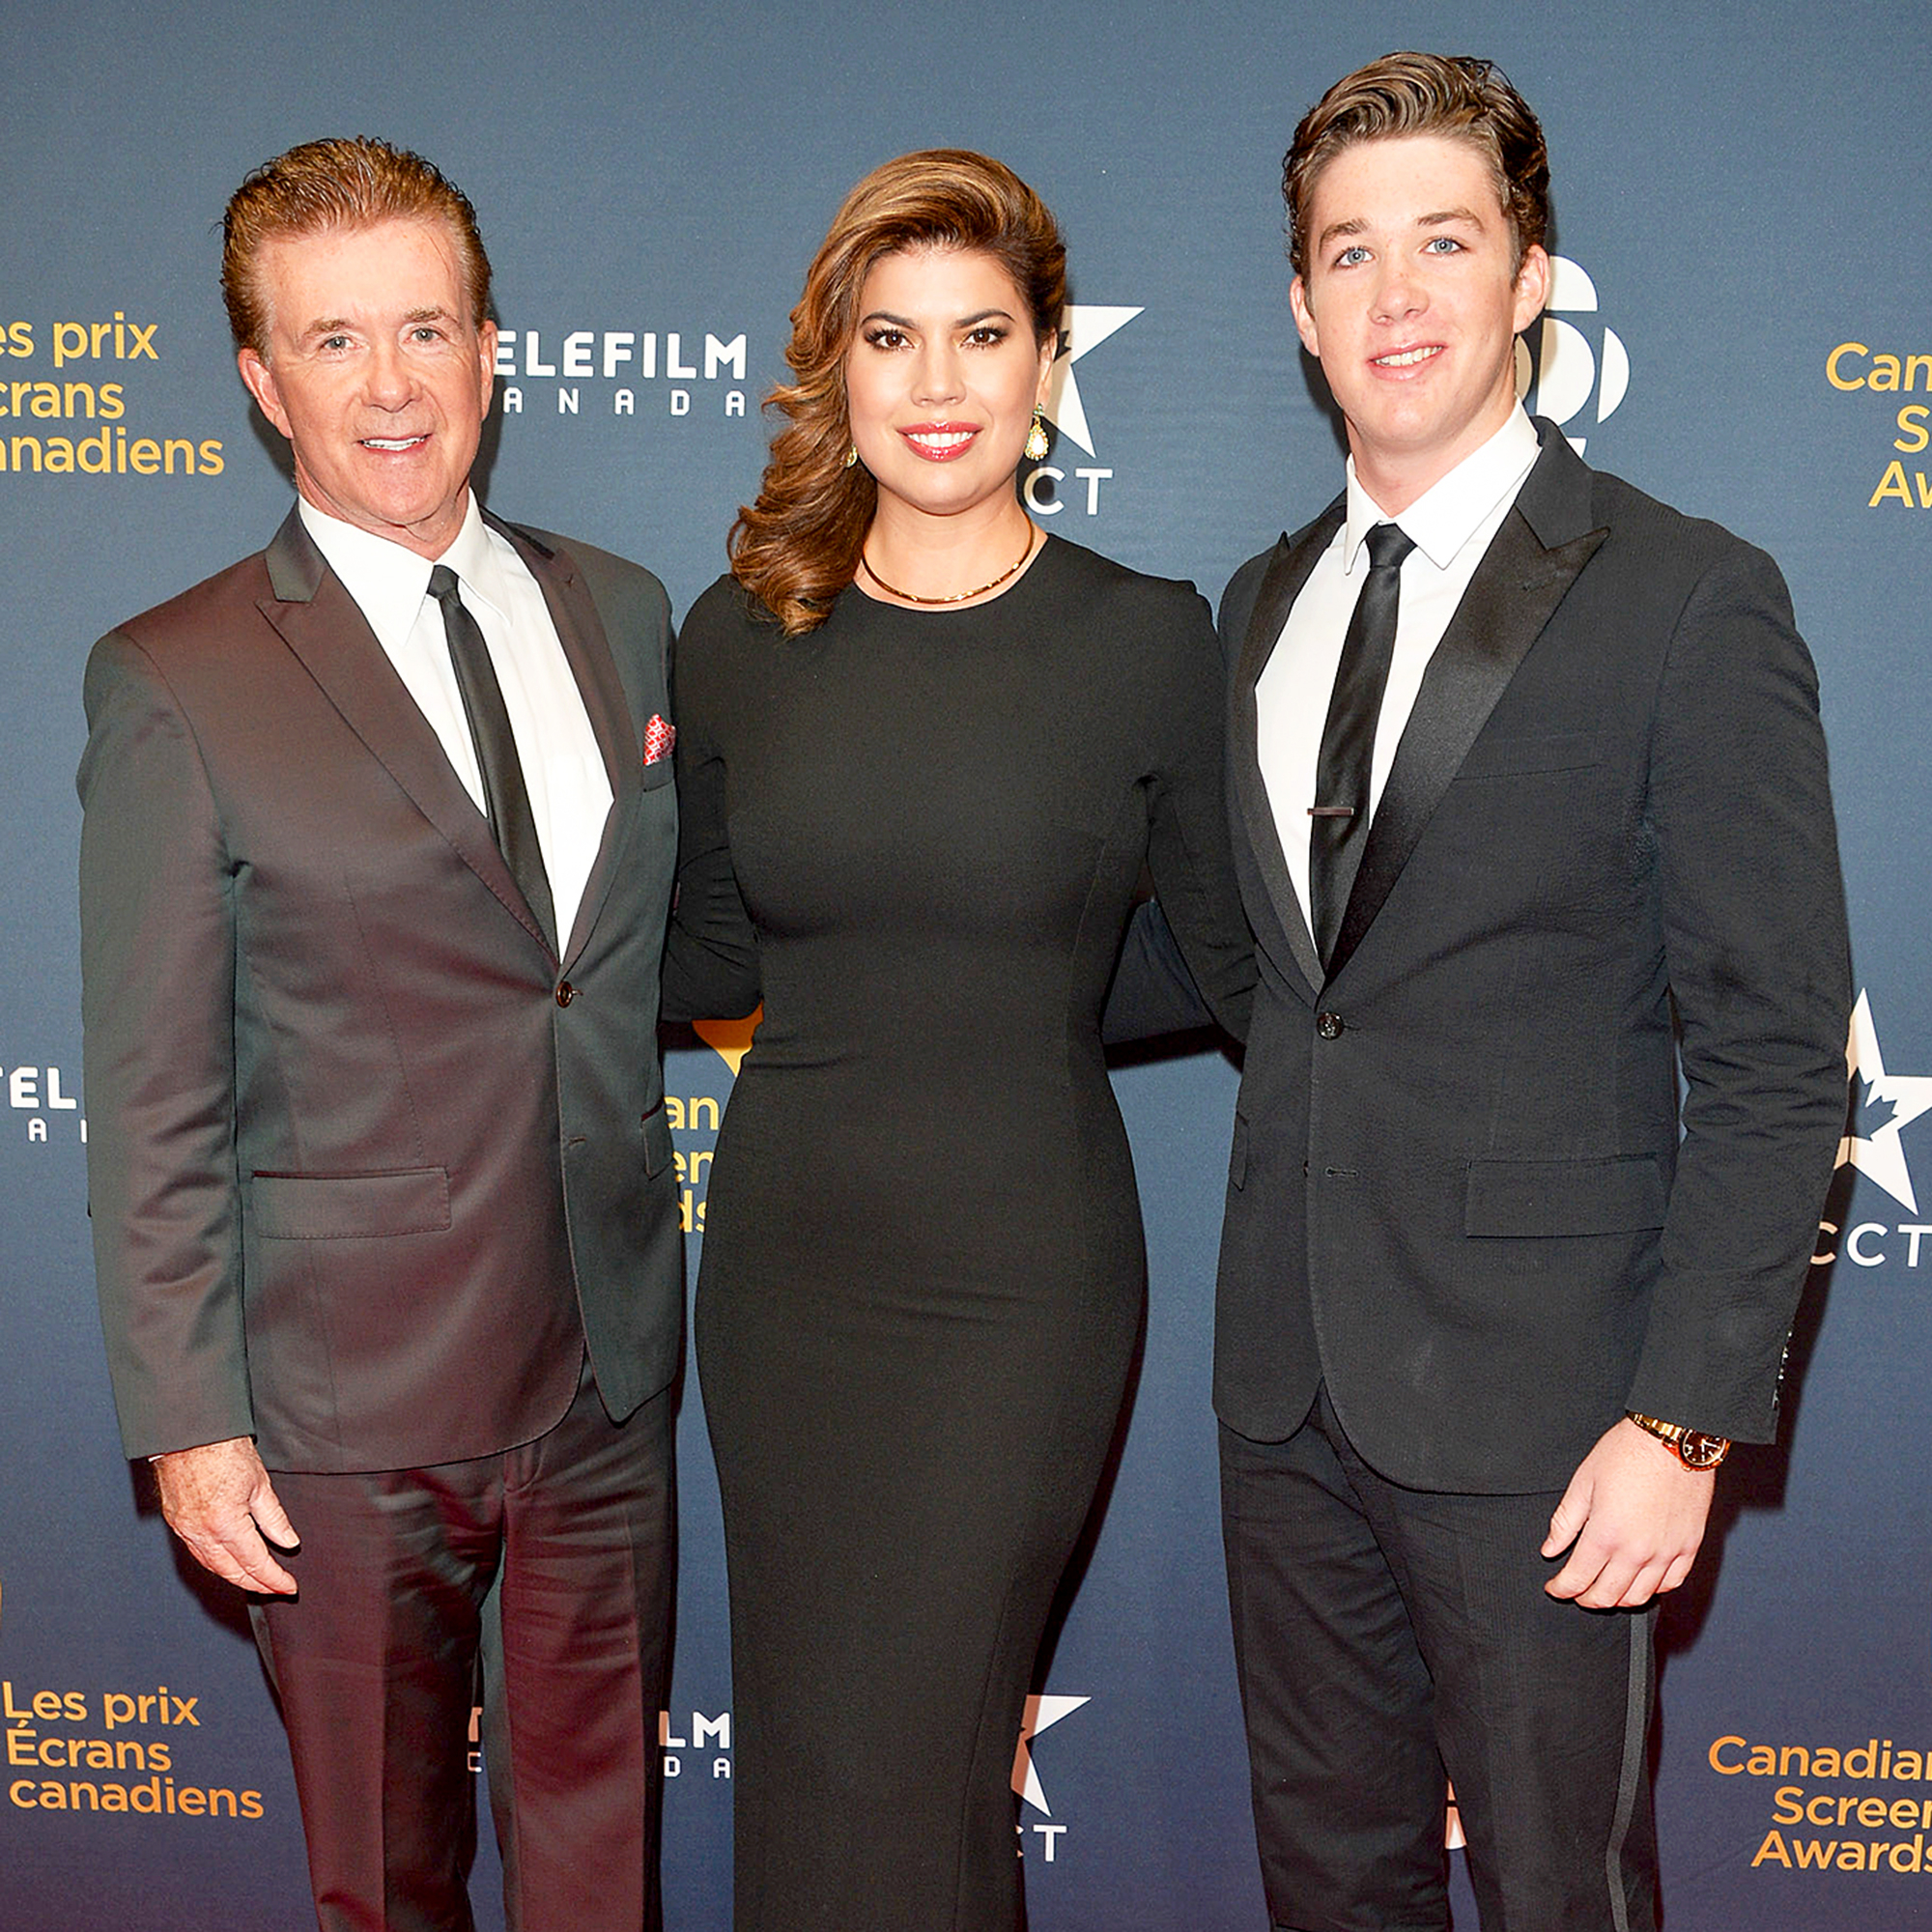 Alan Thicke, Tanya Thicke and Carter Thicke